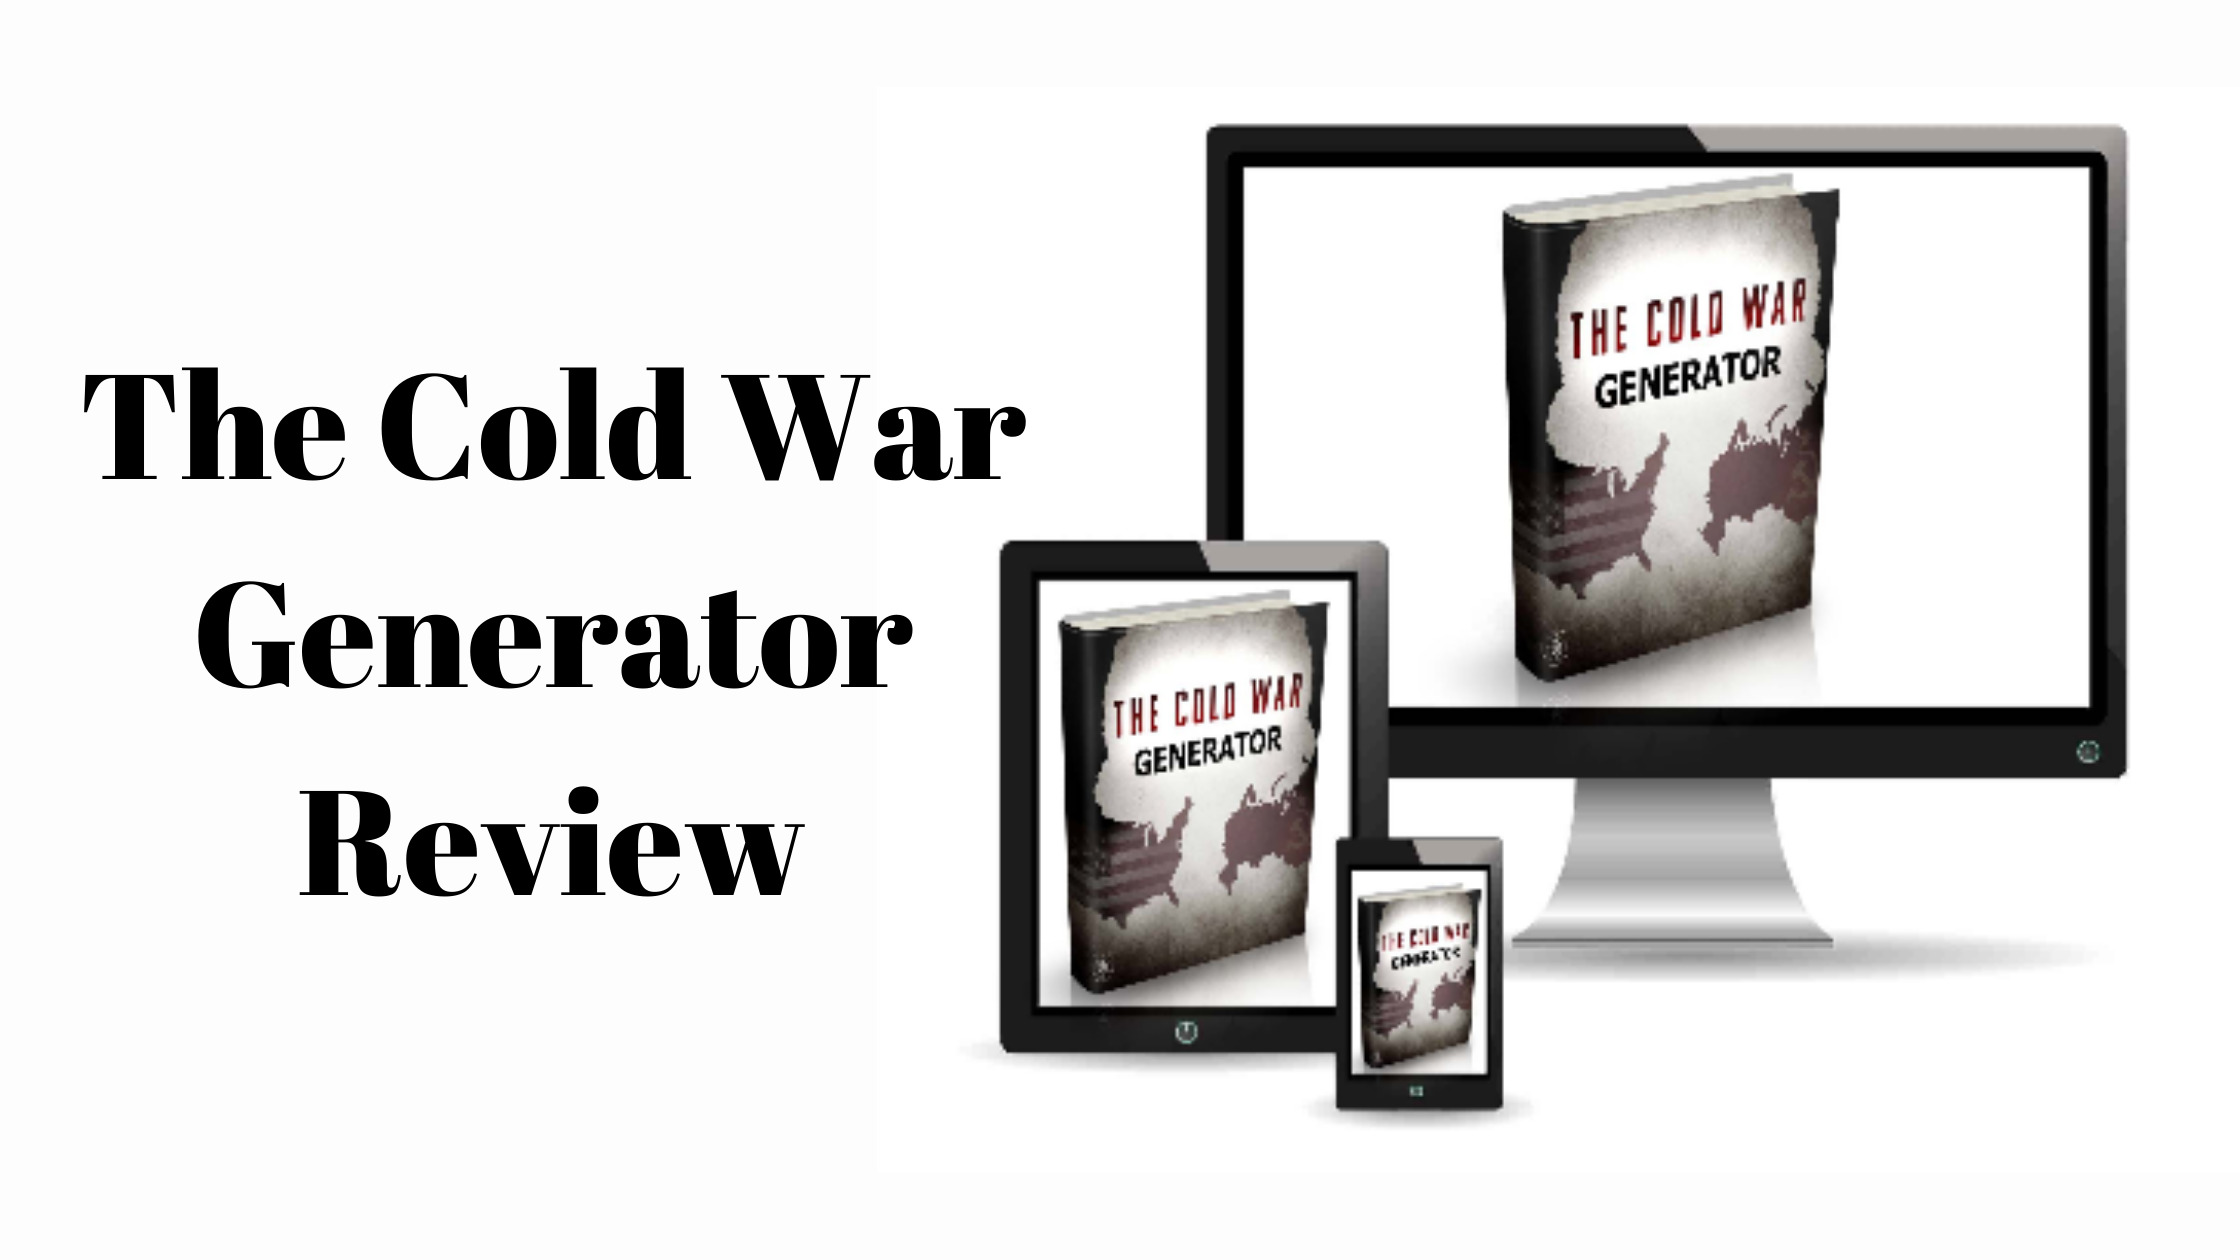 The Cold War Generator Review